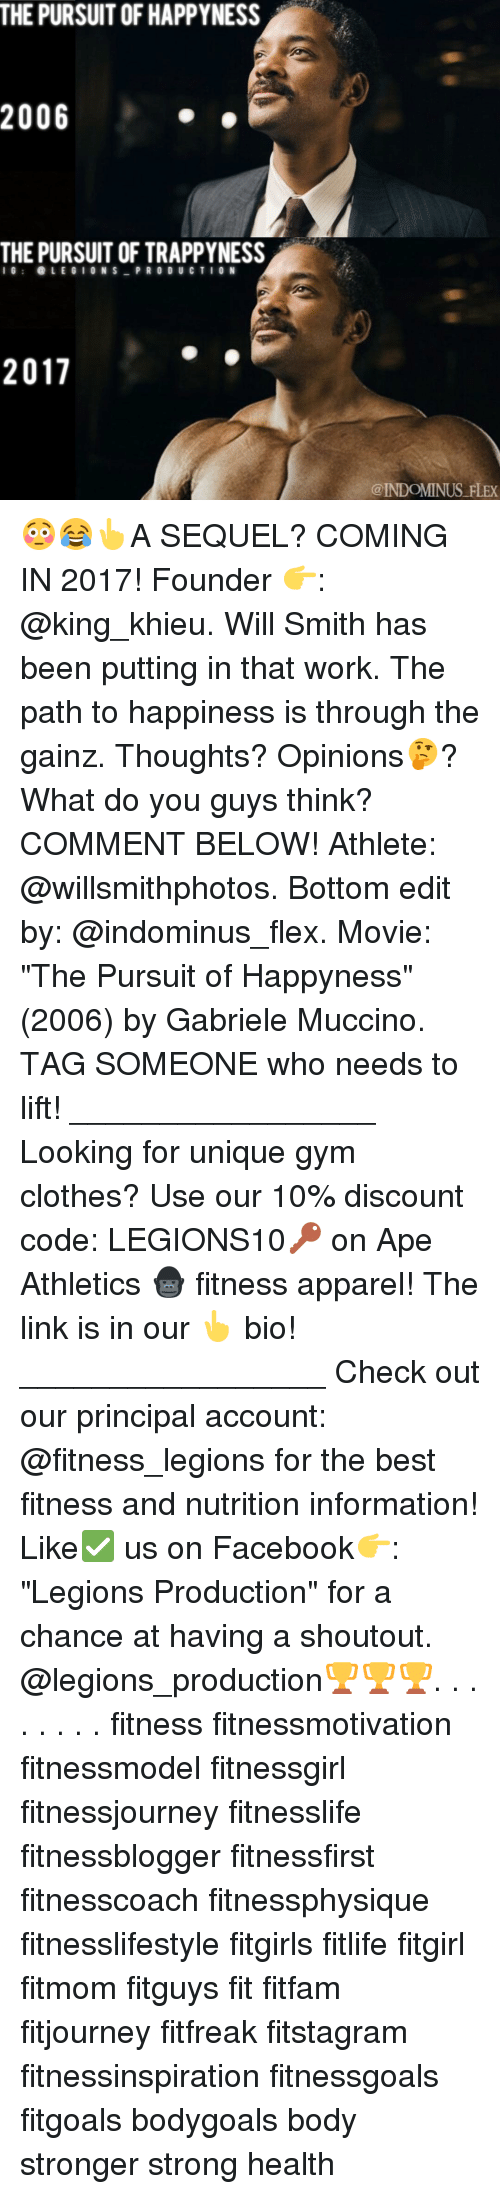 "cloths: 2006  OF HAPPYNESS  THE PURSUIT OF TRAPPYNESS  I G  e LEGION S  PRODUCT I O N  2017  @INDOMINUS FLEX 😳😂👆A SEQUEL? COMING IN 2017! Founder 👉: @king_khieu. Will Smith has been putting in that work. The path to happiness is through the gainz. Thoughts? Opinions🤔? What do you guys think? COMMENT BELOW! Athlete: @willsmithphotos. Bottom edit by: @indominus_flex. Movie: ""The Pursuit of Happyness"" (2006) by Gabriele Muccino. TAG SOMEONE who needs to lift! _________________ Looking for unique gym clothes? Use our 10% discount code: LEGIONS10🔑 on Ape Athletics 🦍 fitness apparel! The link is in our 👆 bio! _________________ Check out our principal account: @fitness_legions for the best fitness and nutrition information! Like✅ us on Facebook👉: ""Legions Production"" for a chance at having a shoutout. @legions_production🏆🏆🏆. . . . . . . . fitness fitnessmotivation fitnessmodel fitnessgirl fitnessjourney fitnesslife fitnessblogger fitnessfirst fitnesscoach fitnessphysique fitnesslifestyle fitgirls fitlife fitgirl fitmom fitguys fit fitfam fitjourney fitfreak fitstagram fitnessinspiration fitnessgoals fitgoals bodygoals body stronger strong health"